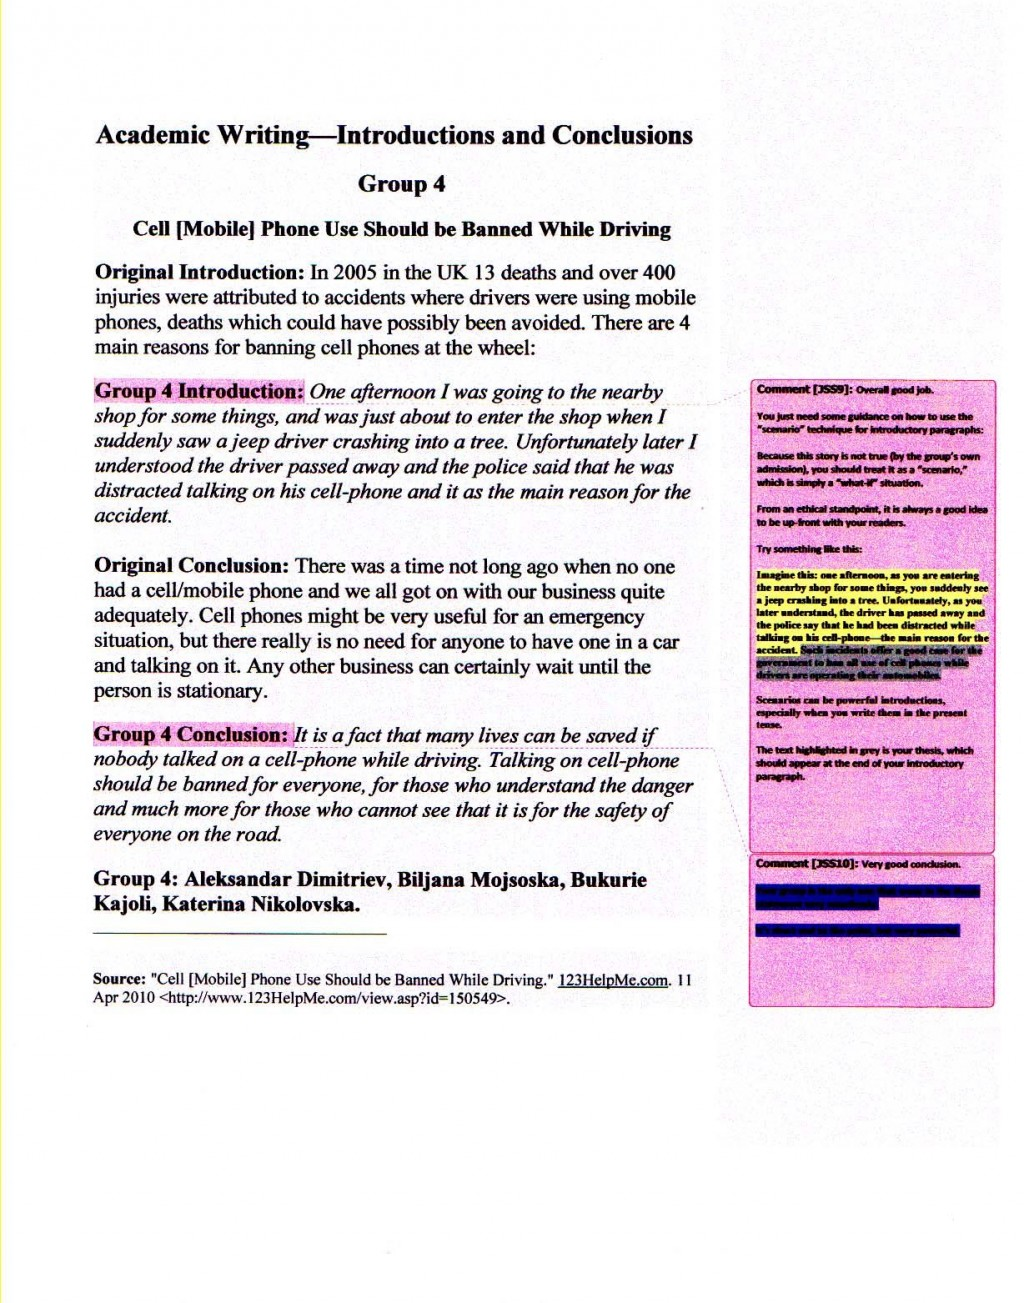 006 Persuasive Essay Conclusion Impressive Template Paragraph Examples Example Large